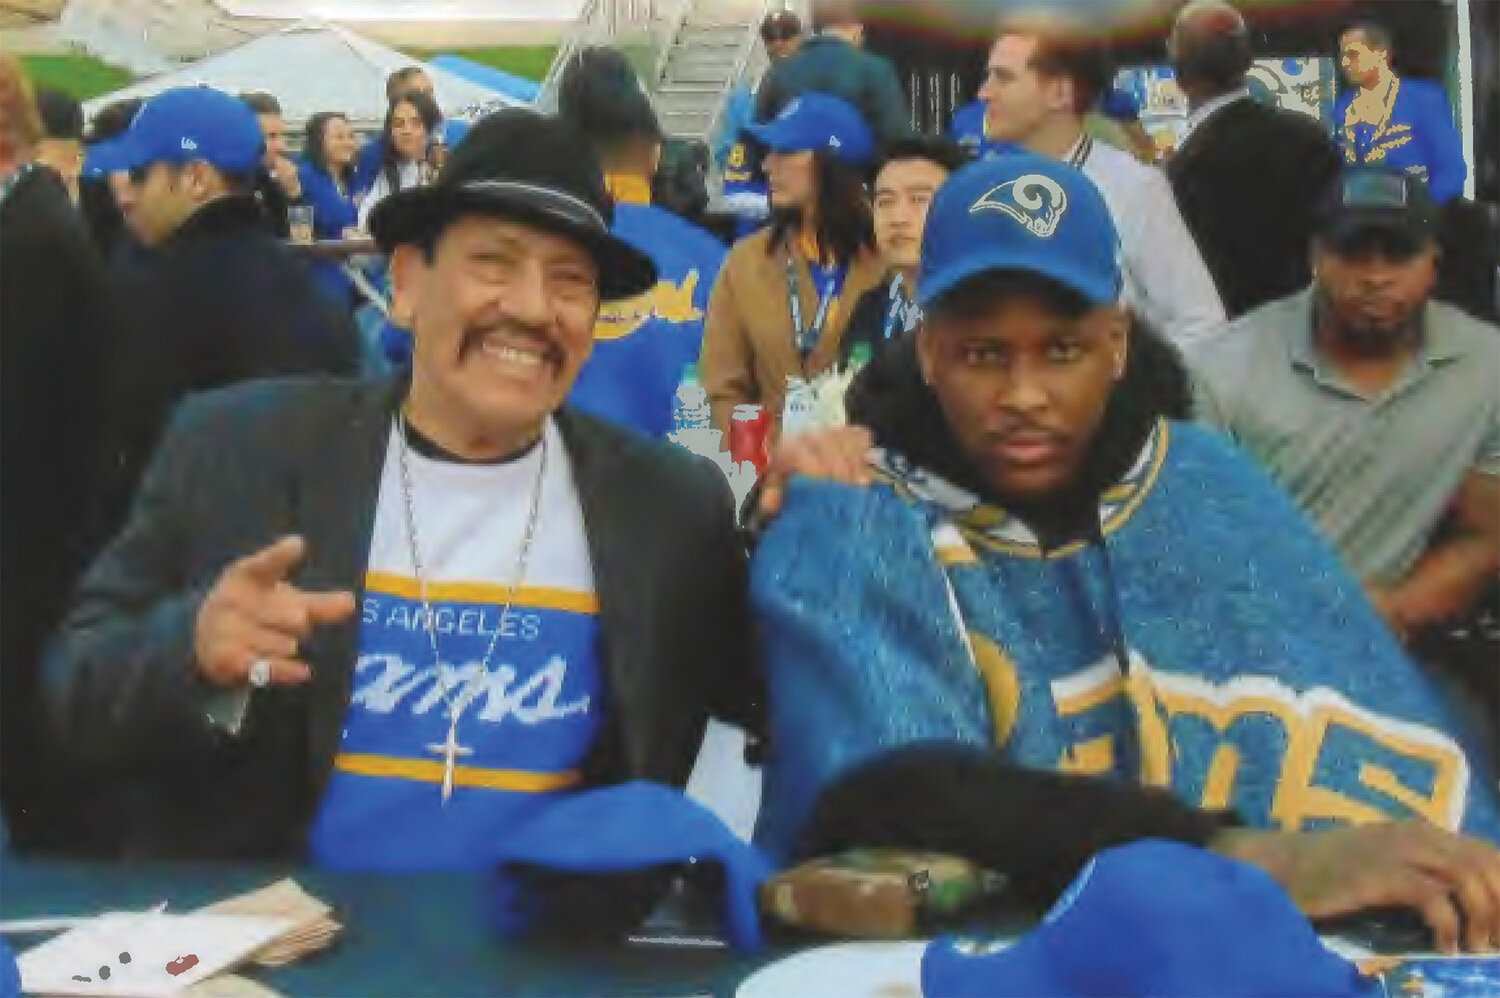 Actor Manny Trejo and Rapper YG at take in Rams win at the Coliseum final game. (Earl Heath Photo)